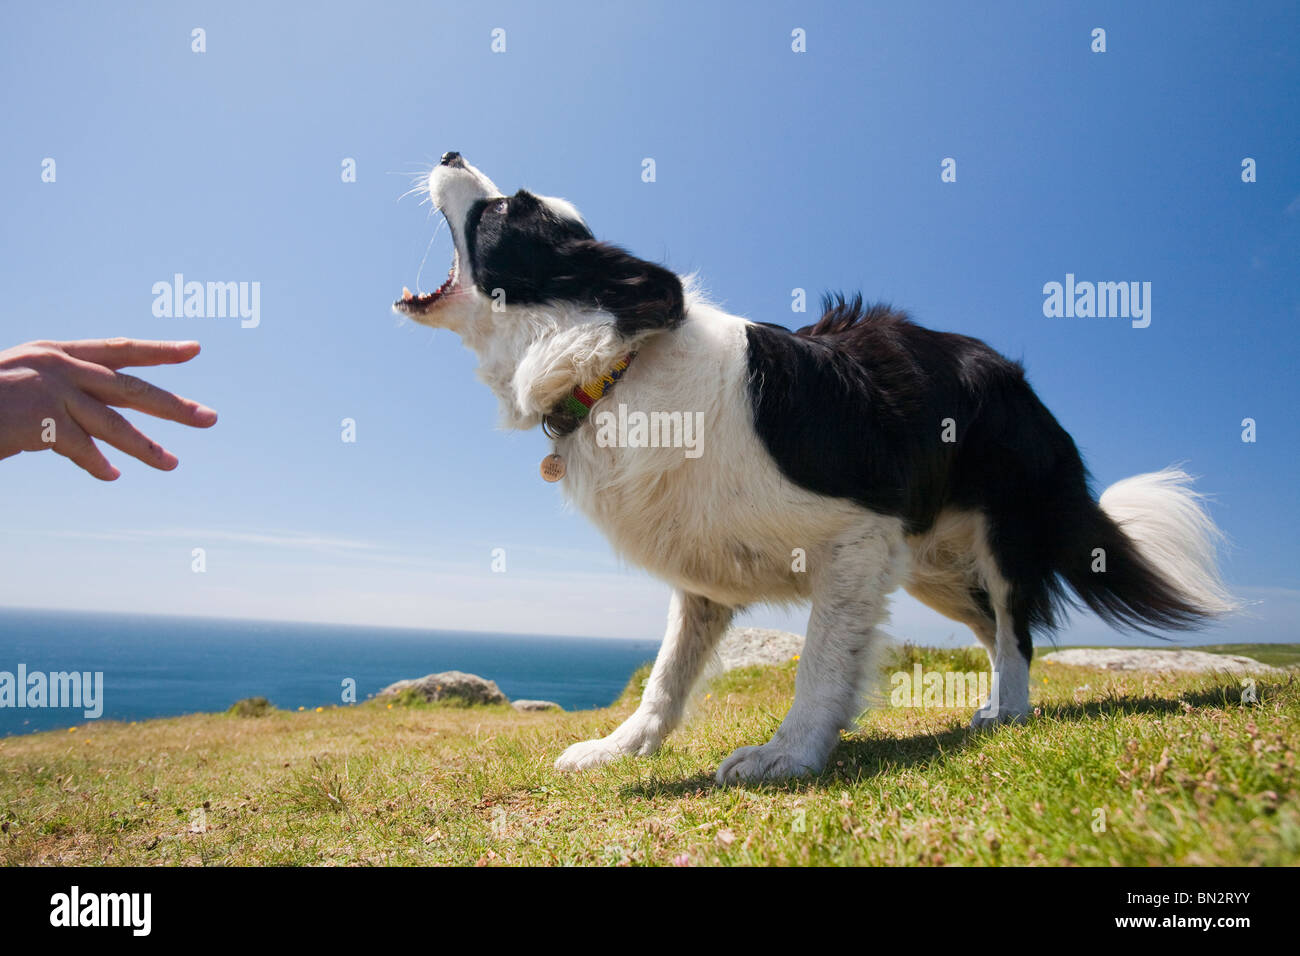 A Border Collie dog waiting for a stick on the Cornish cliff tops near Lands End. - Stock Image